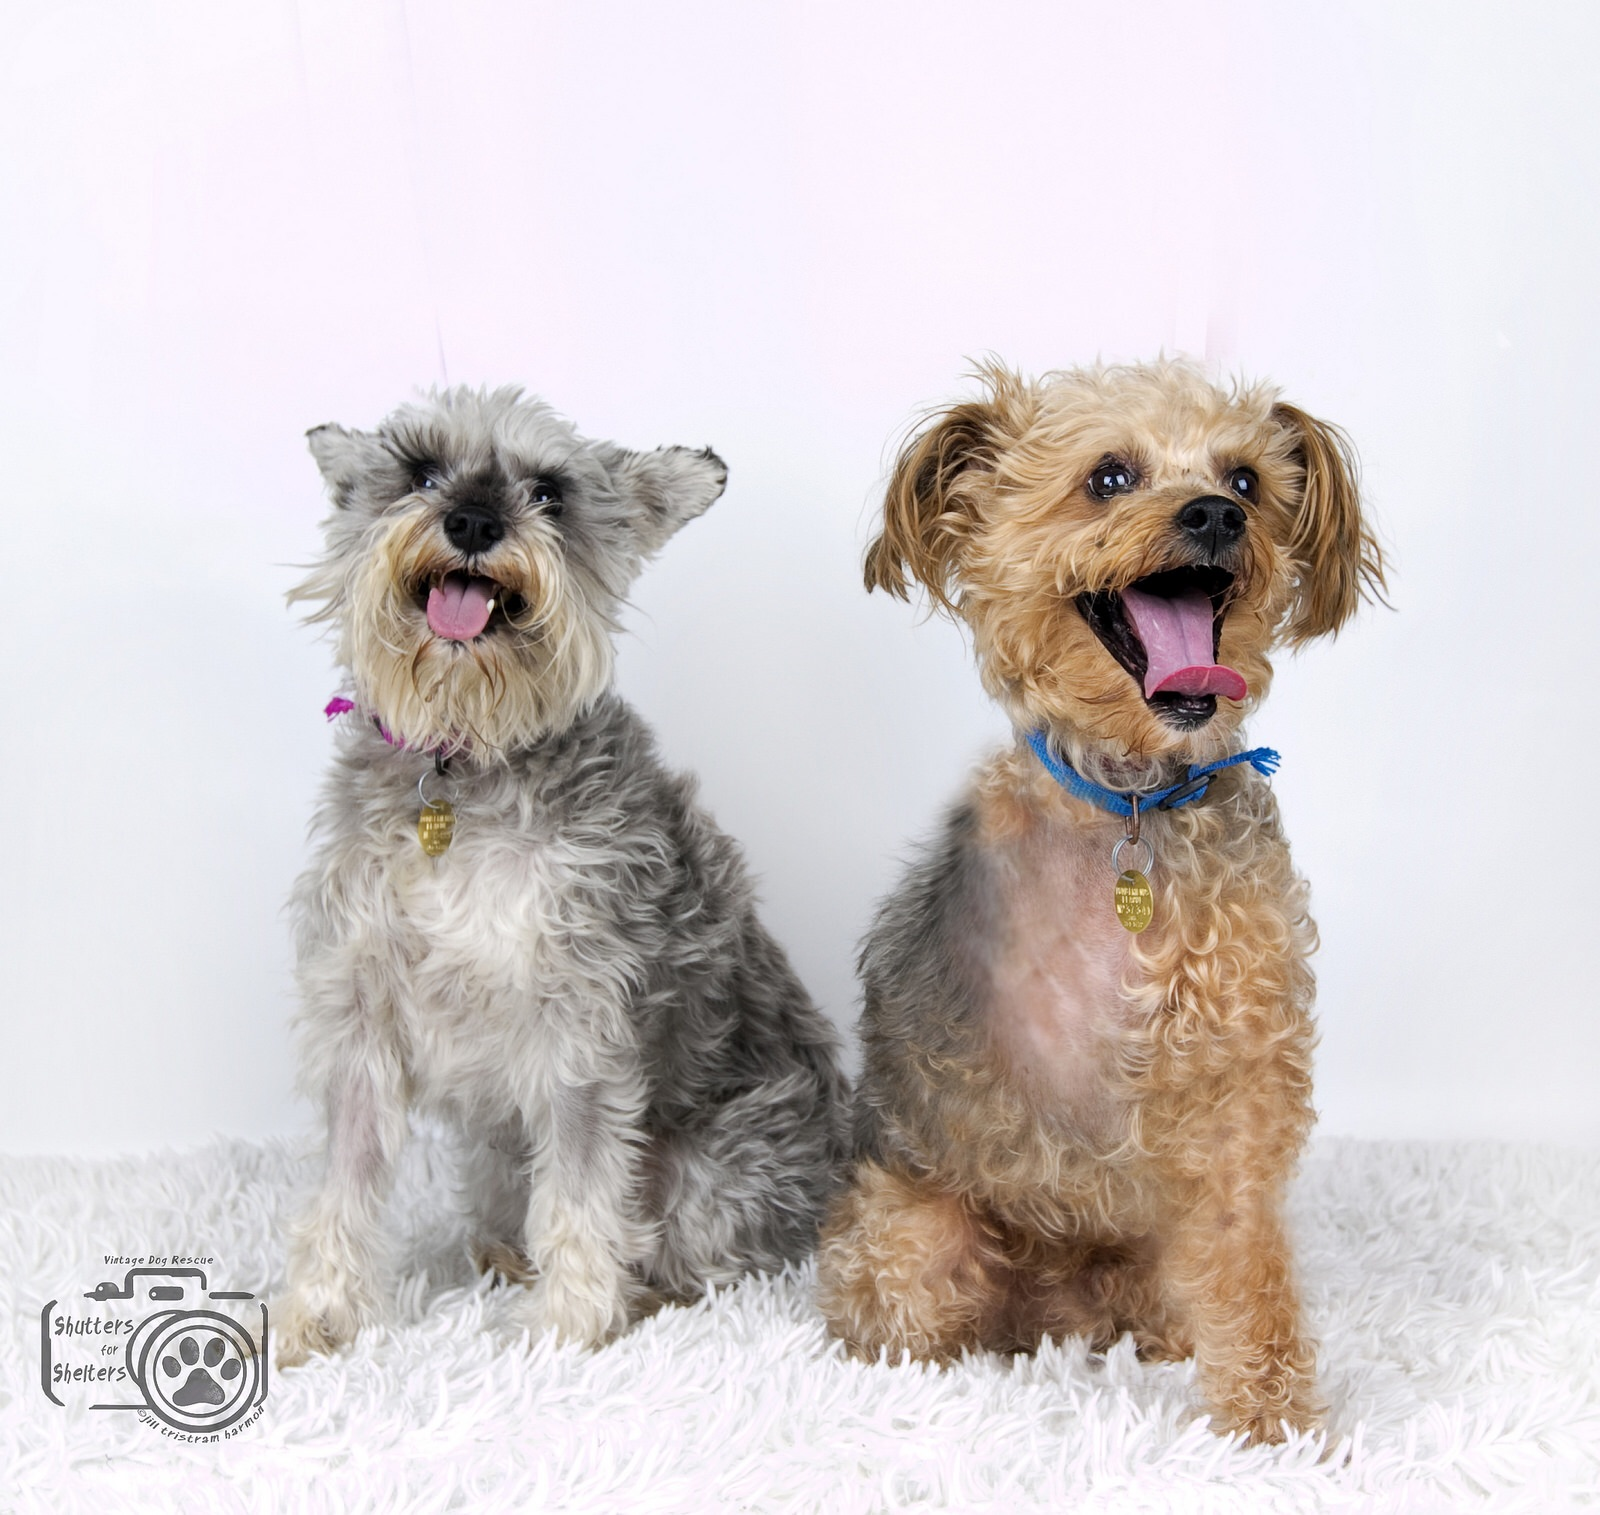 Adopt Tater & Tot: an adorable, bonded pair